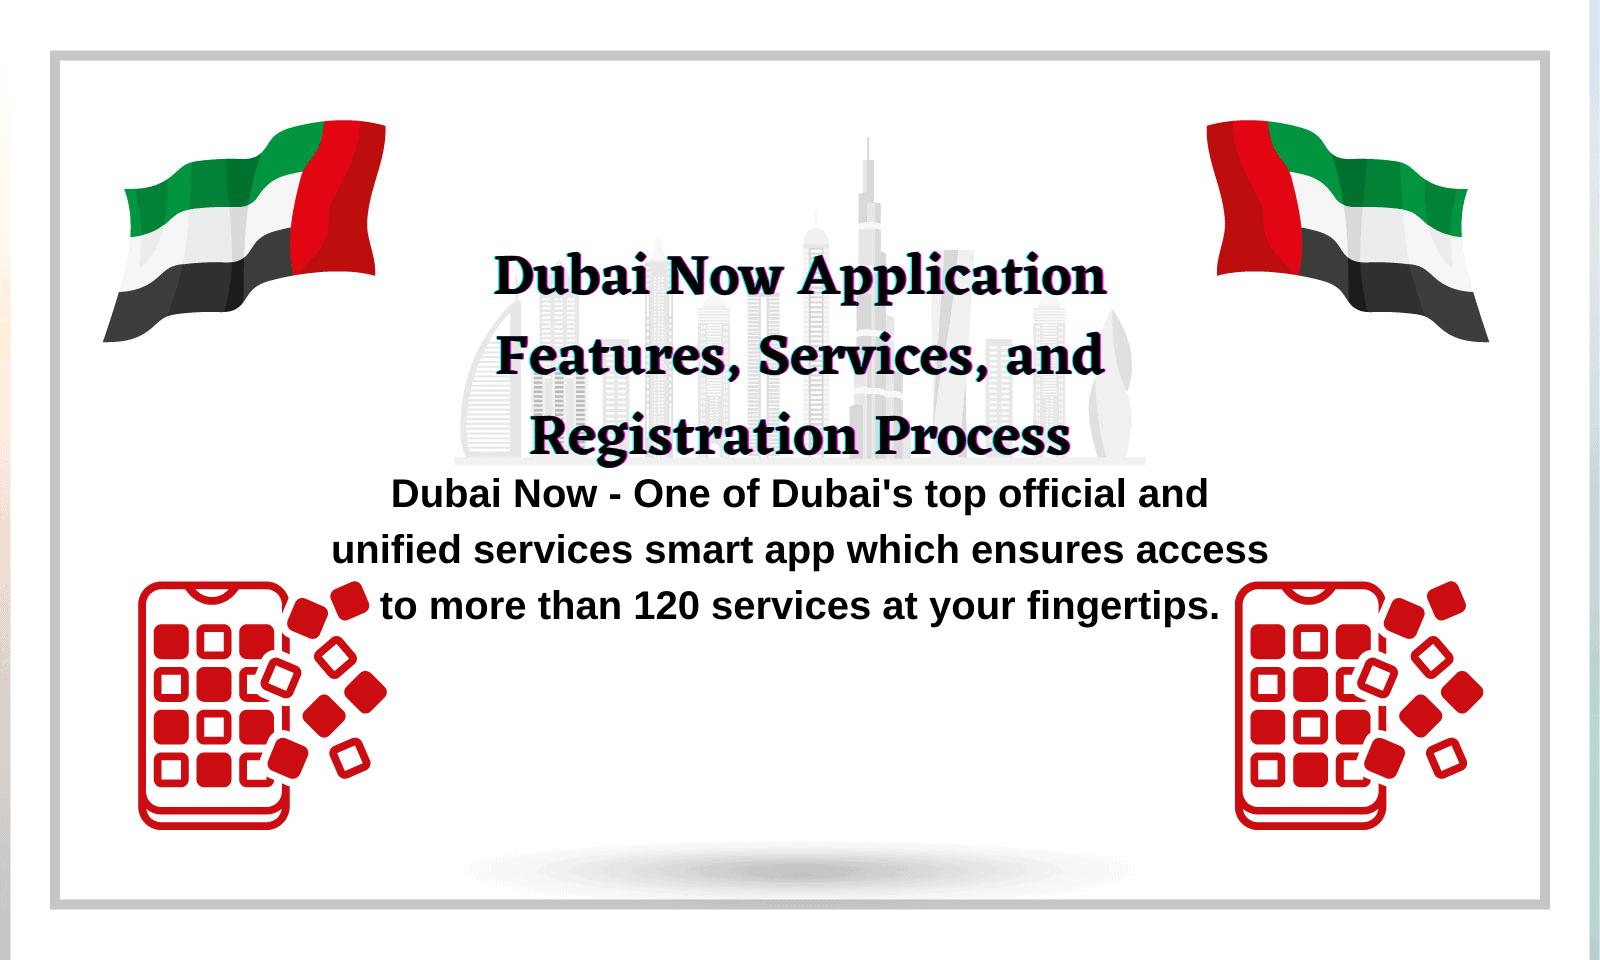 How to register on Dubai Now Application